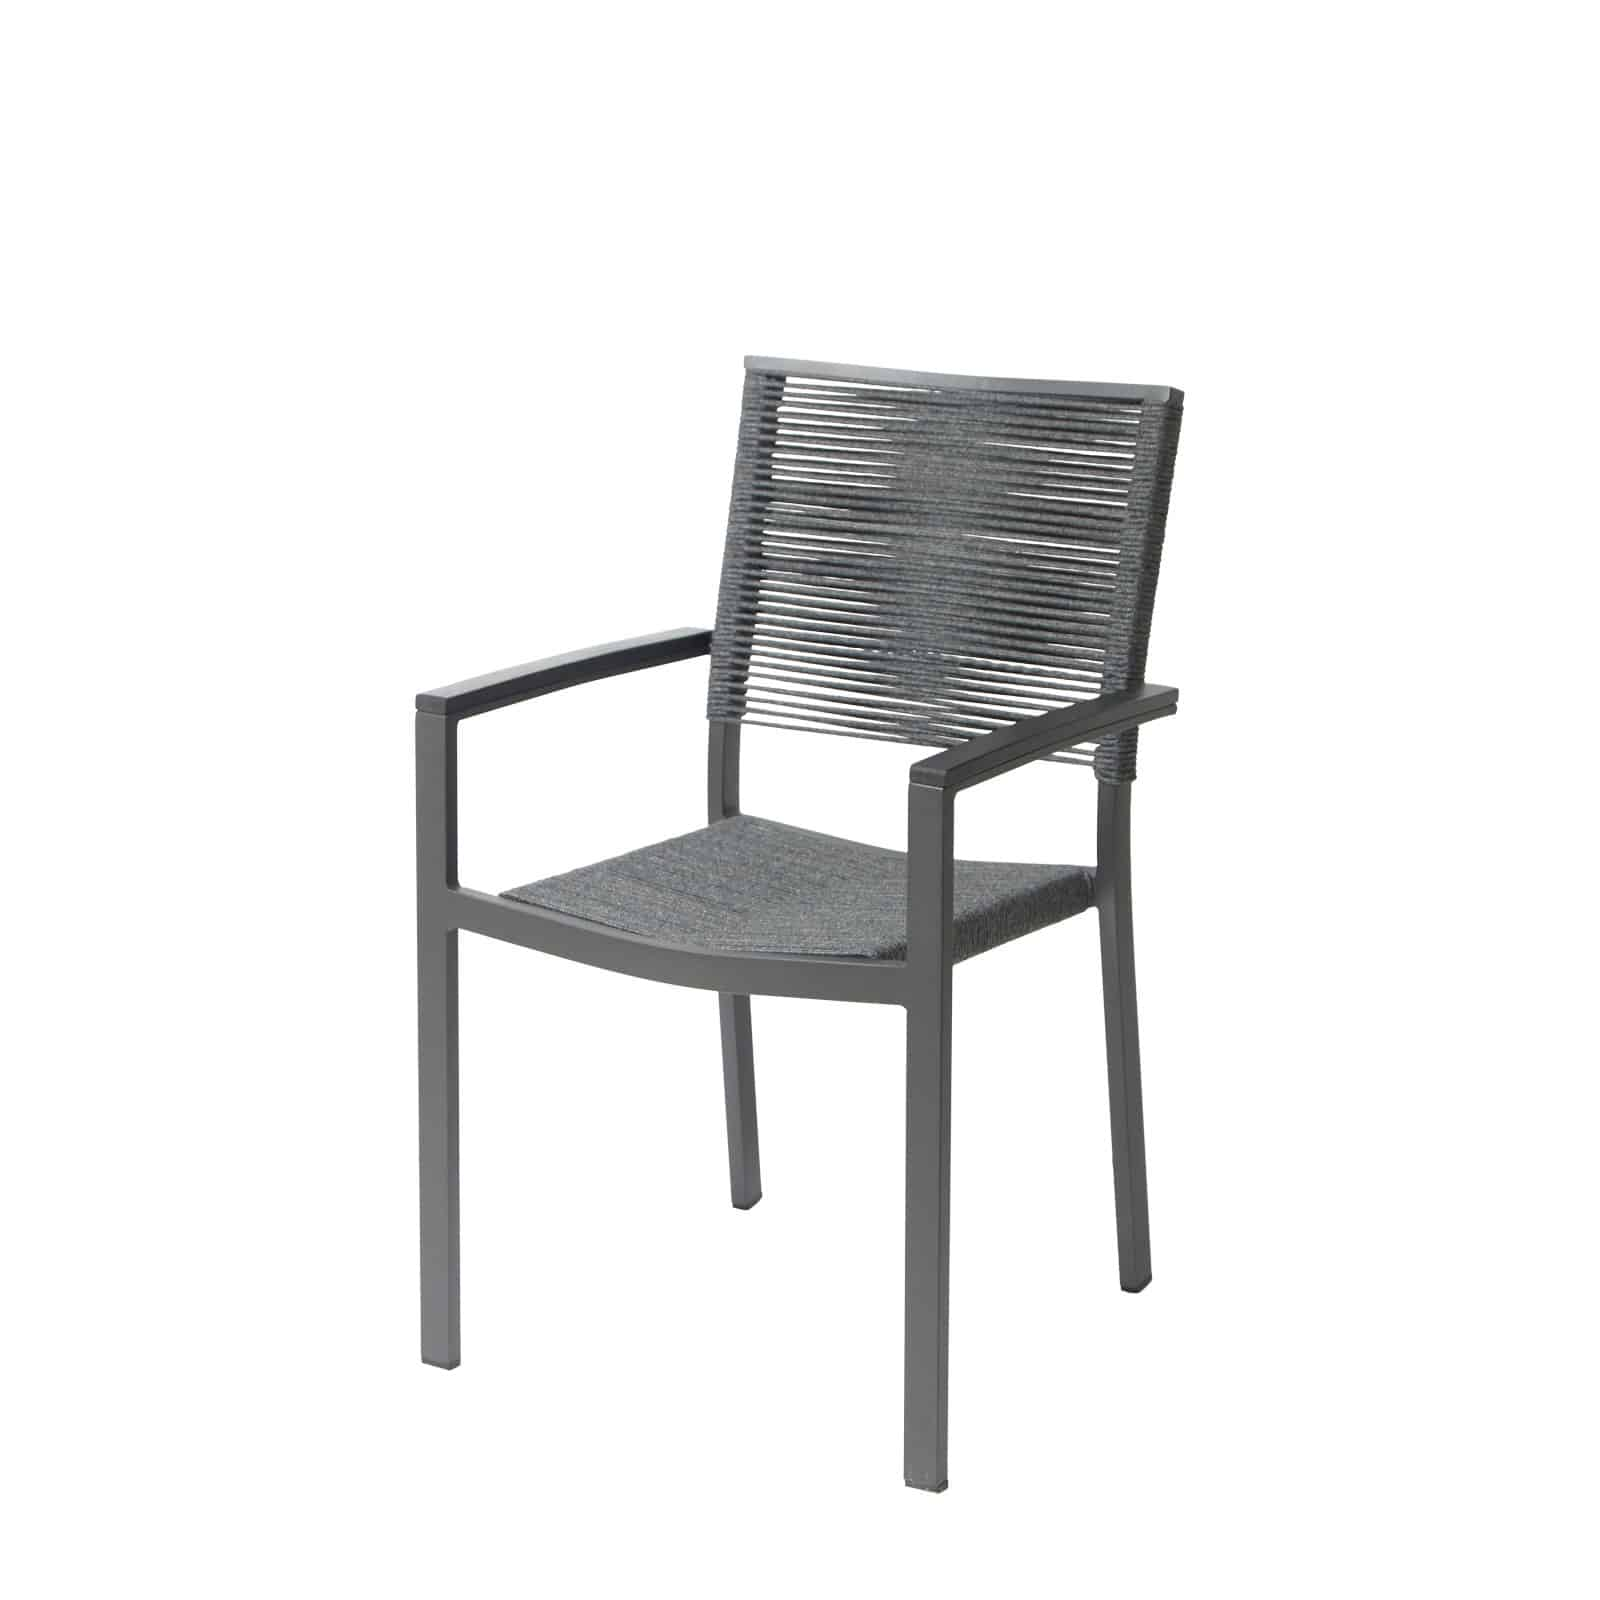 Source Furniture Source Furniture Fiji Rope Dining Arm Chair Dining Arm Chair - Rattan Imports